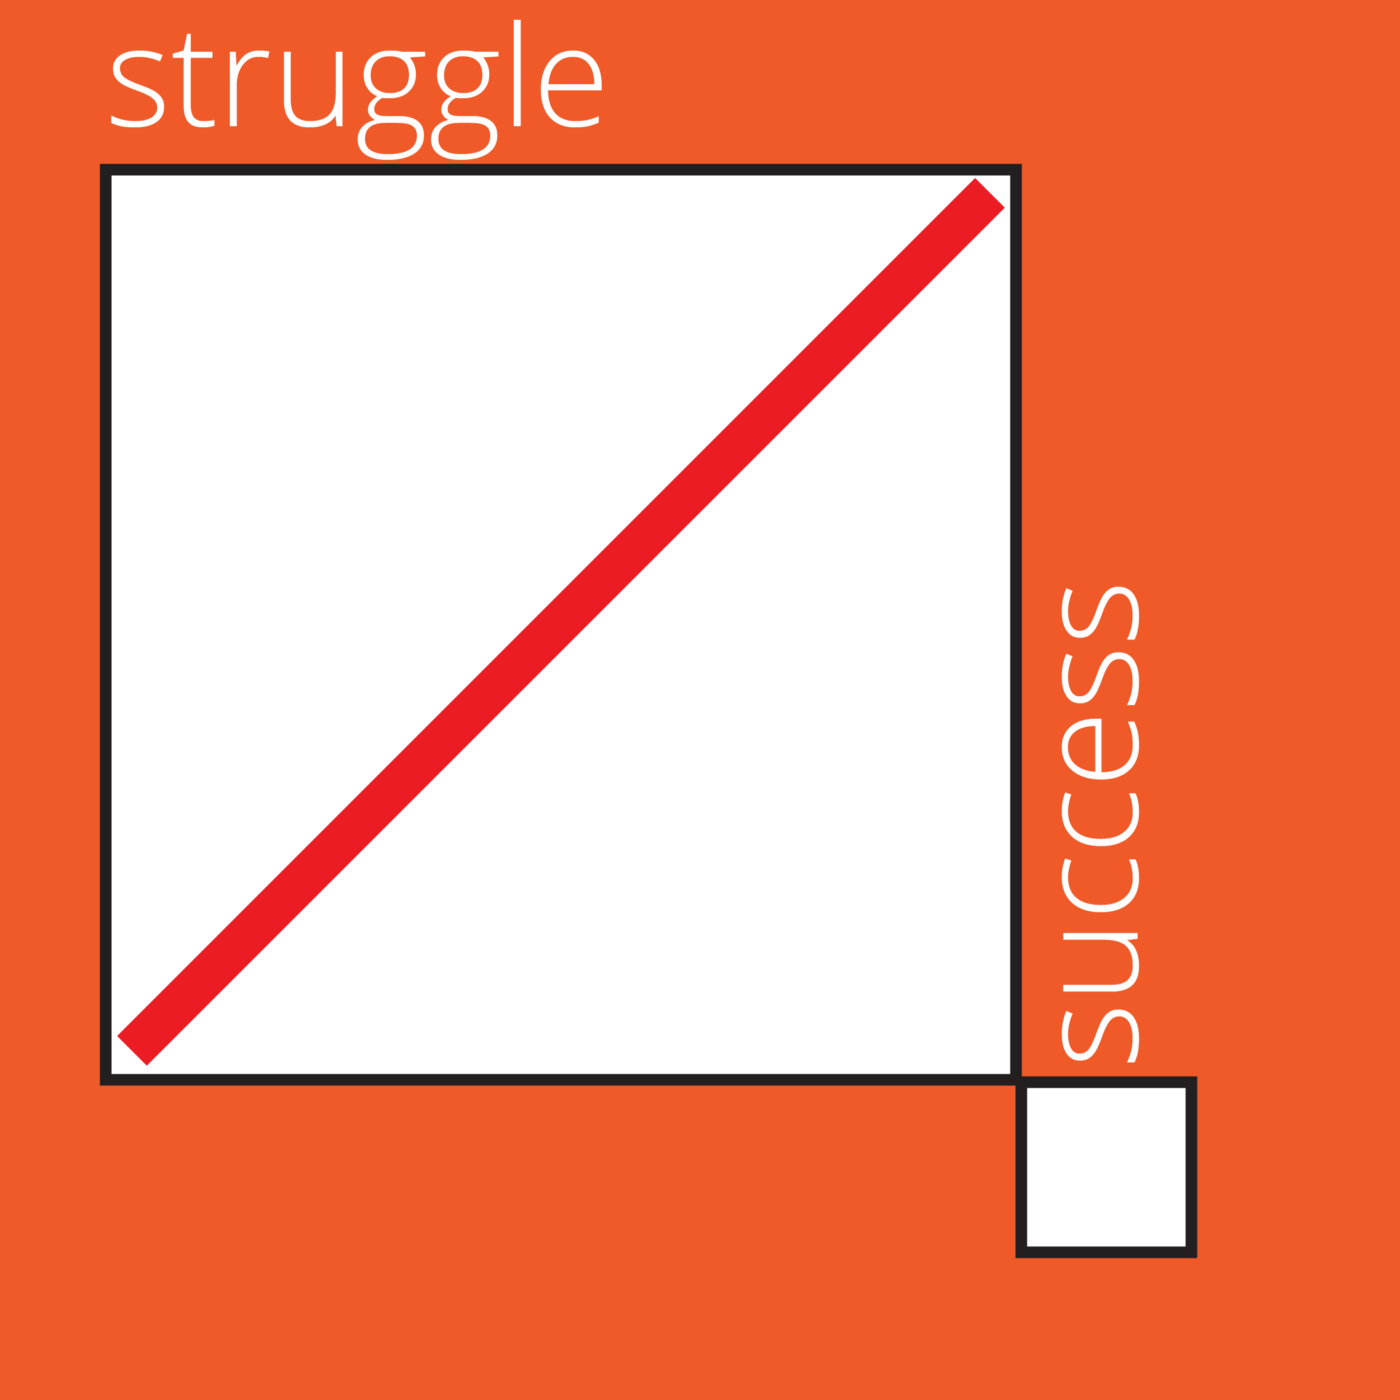 No one wants to see the struggle, just the success